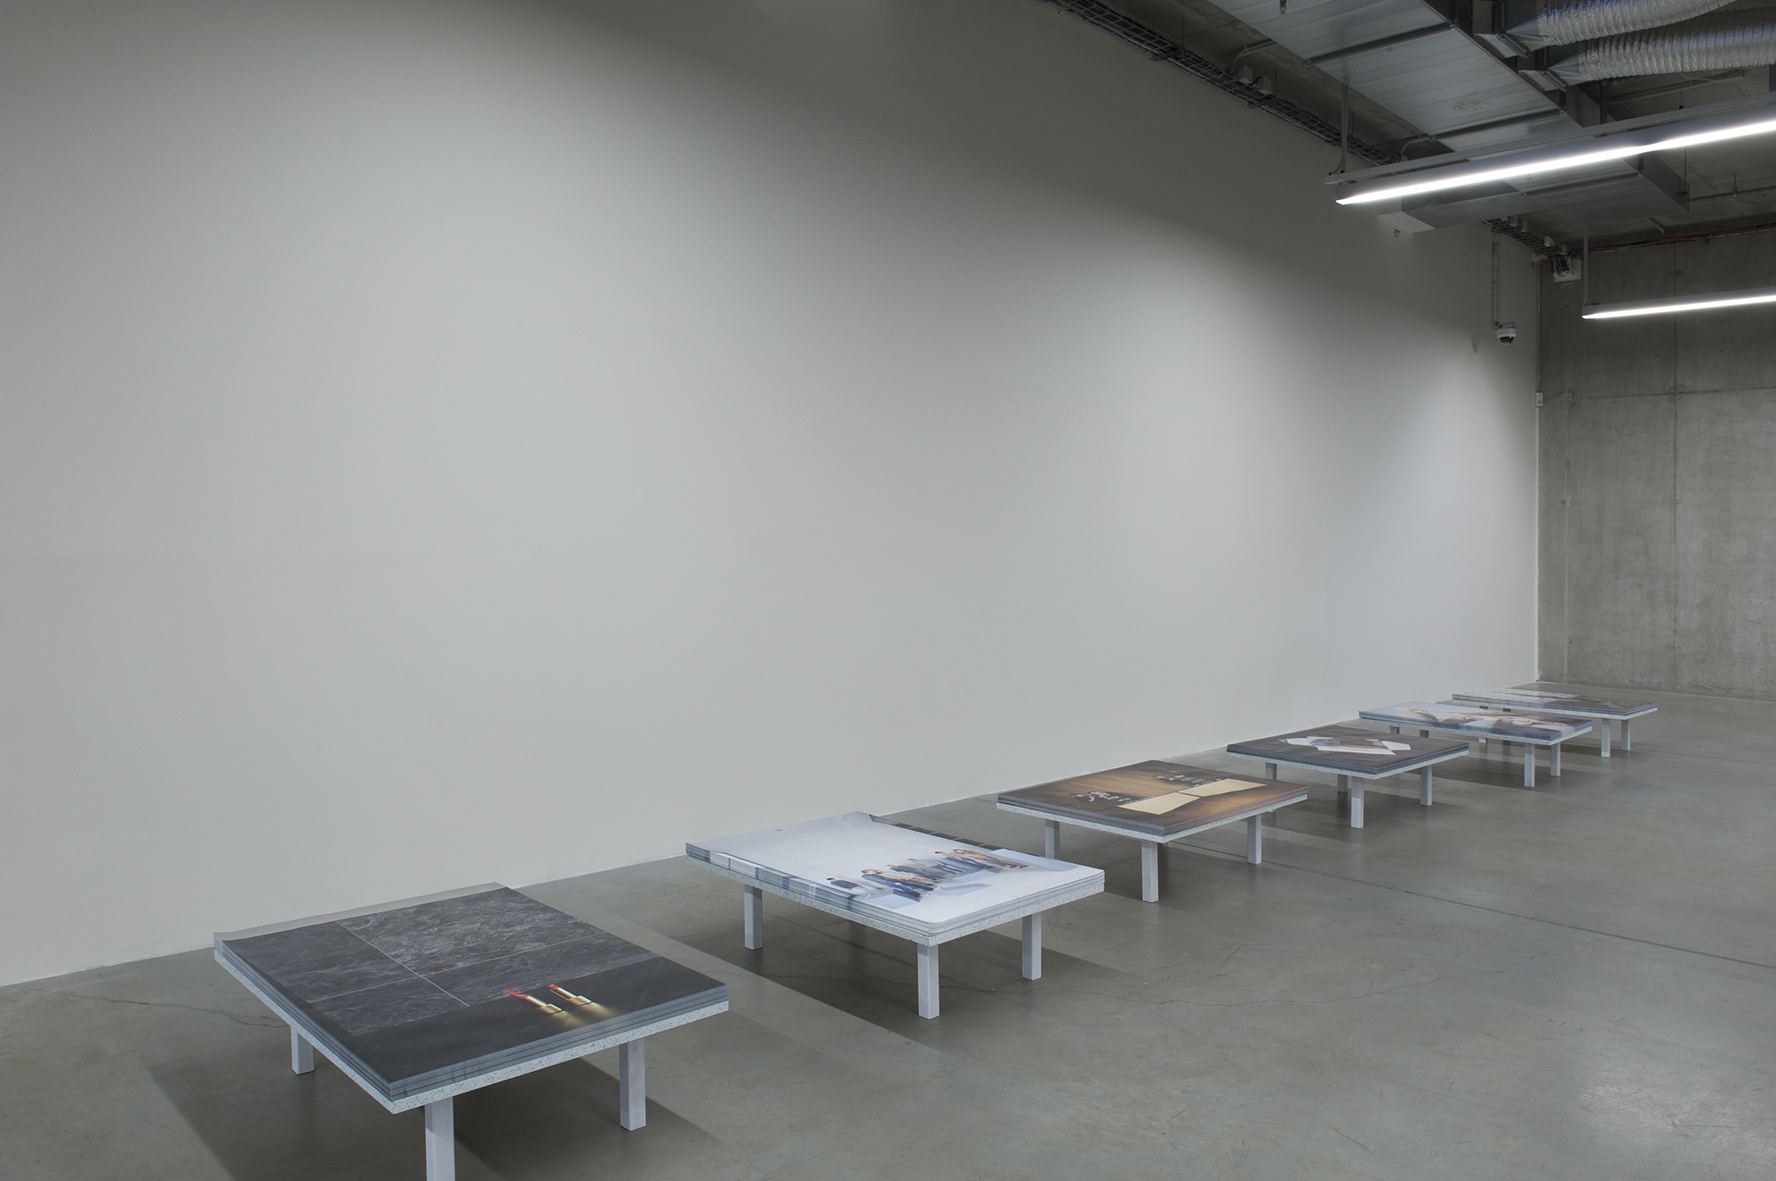 he Exhibition, Daniela Dostálková, The Process of Measuring, 2015